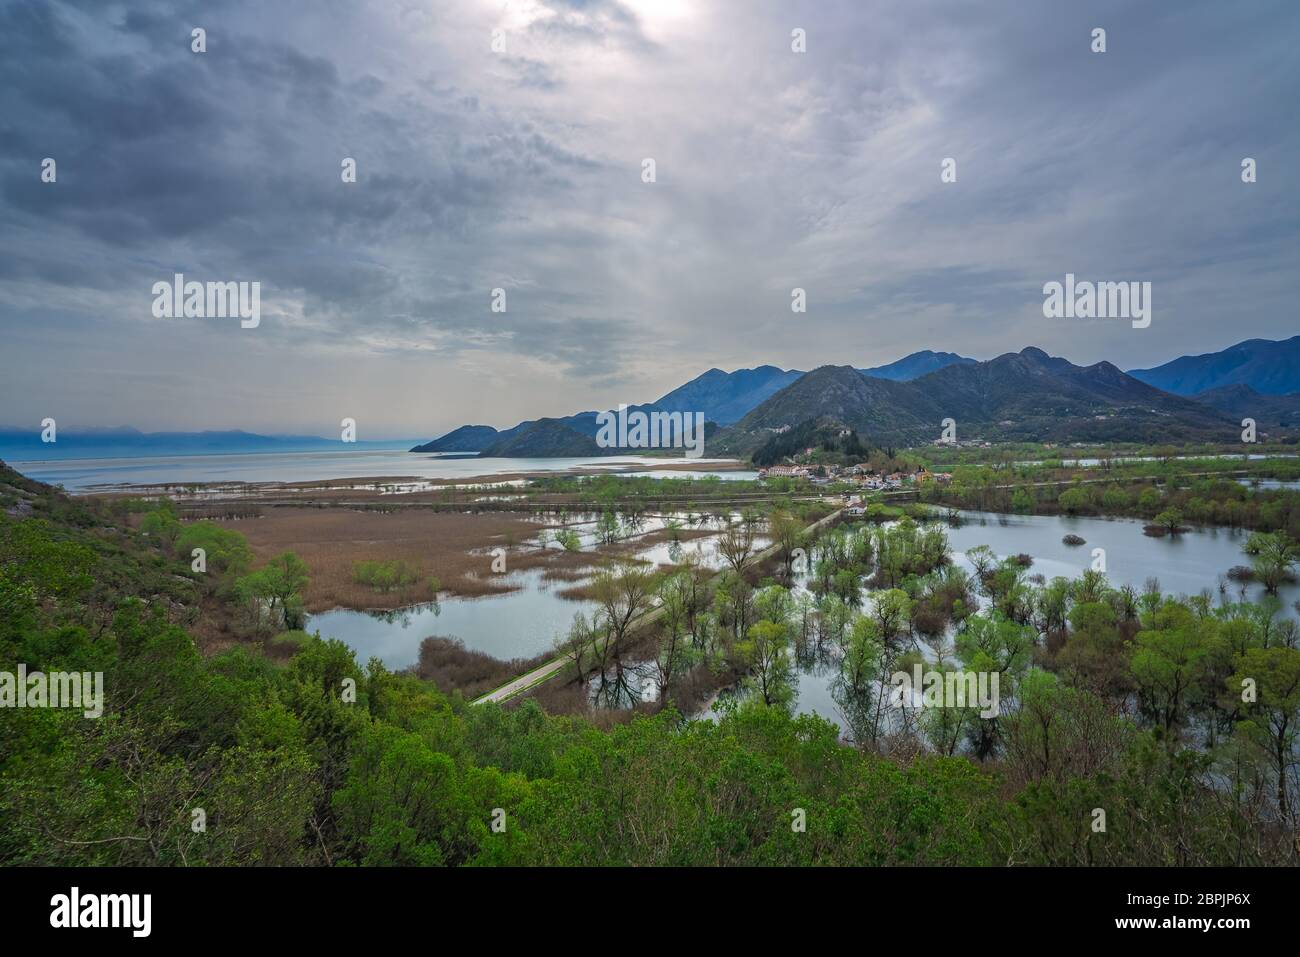 Buildings in small Virpazar town seen from above, Skadar Lake National Park, Montenegro Stock Photo